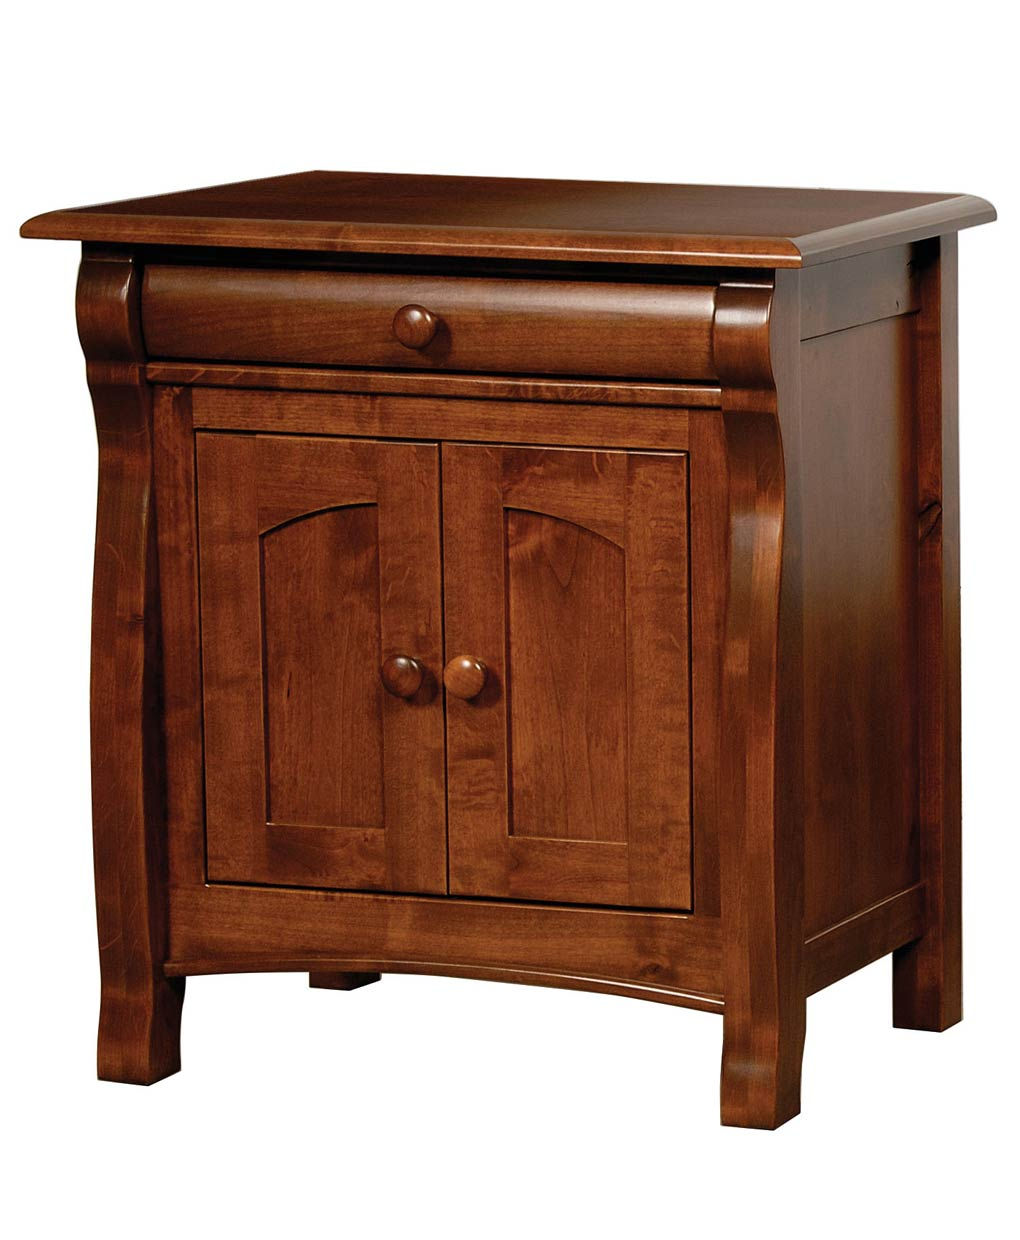 Castlebury 2-door Nightstand